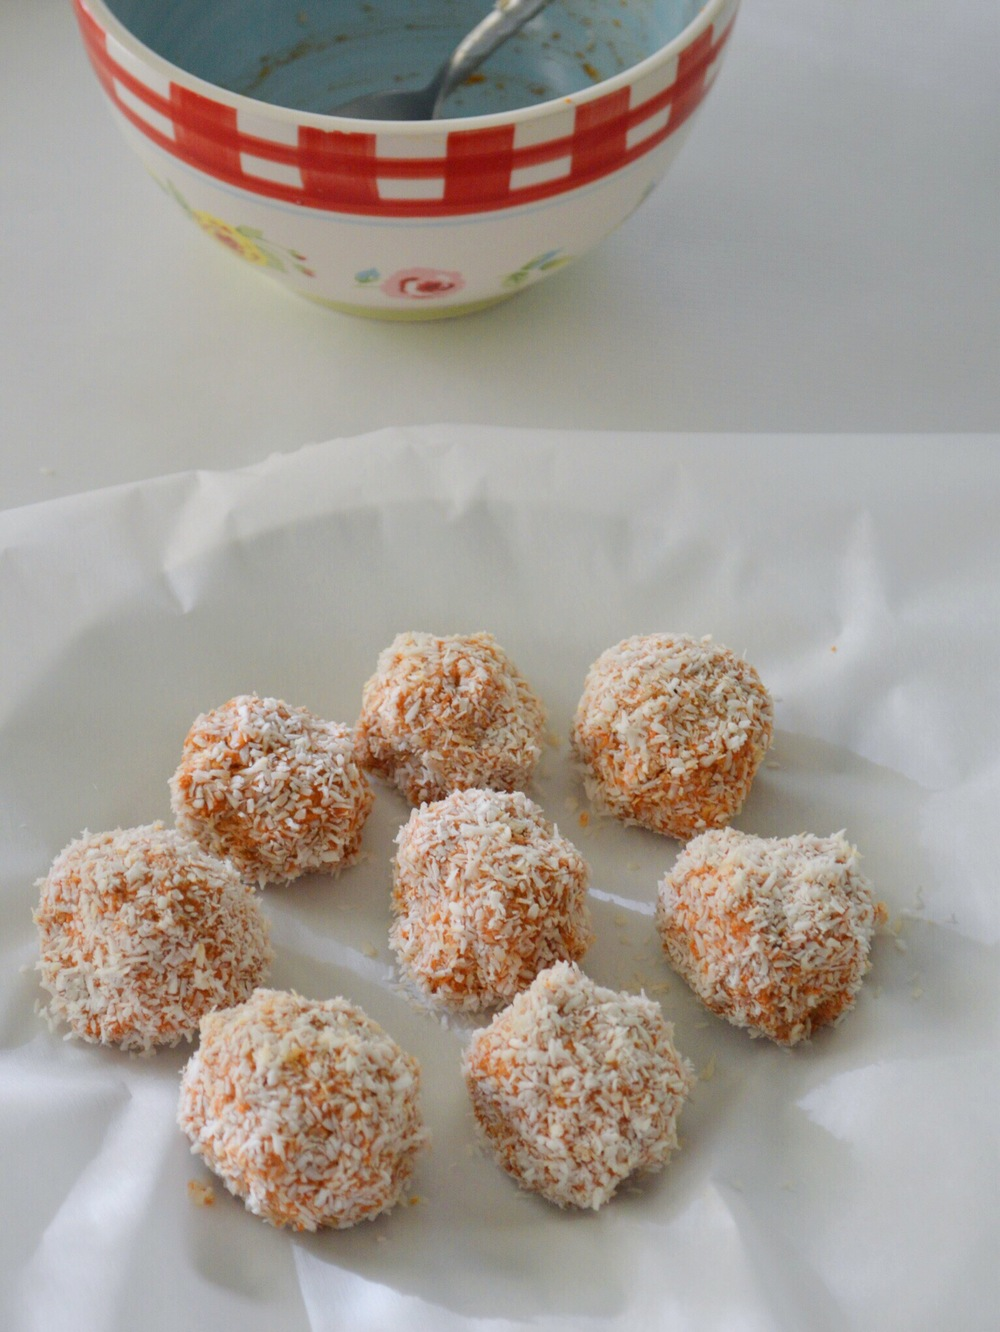 LaurenSchwaiger-Blog-Raw-Carrot-Cake-Balls.jpg